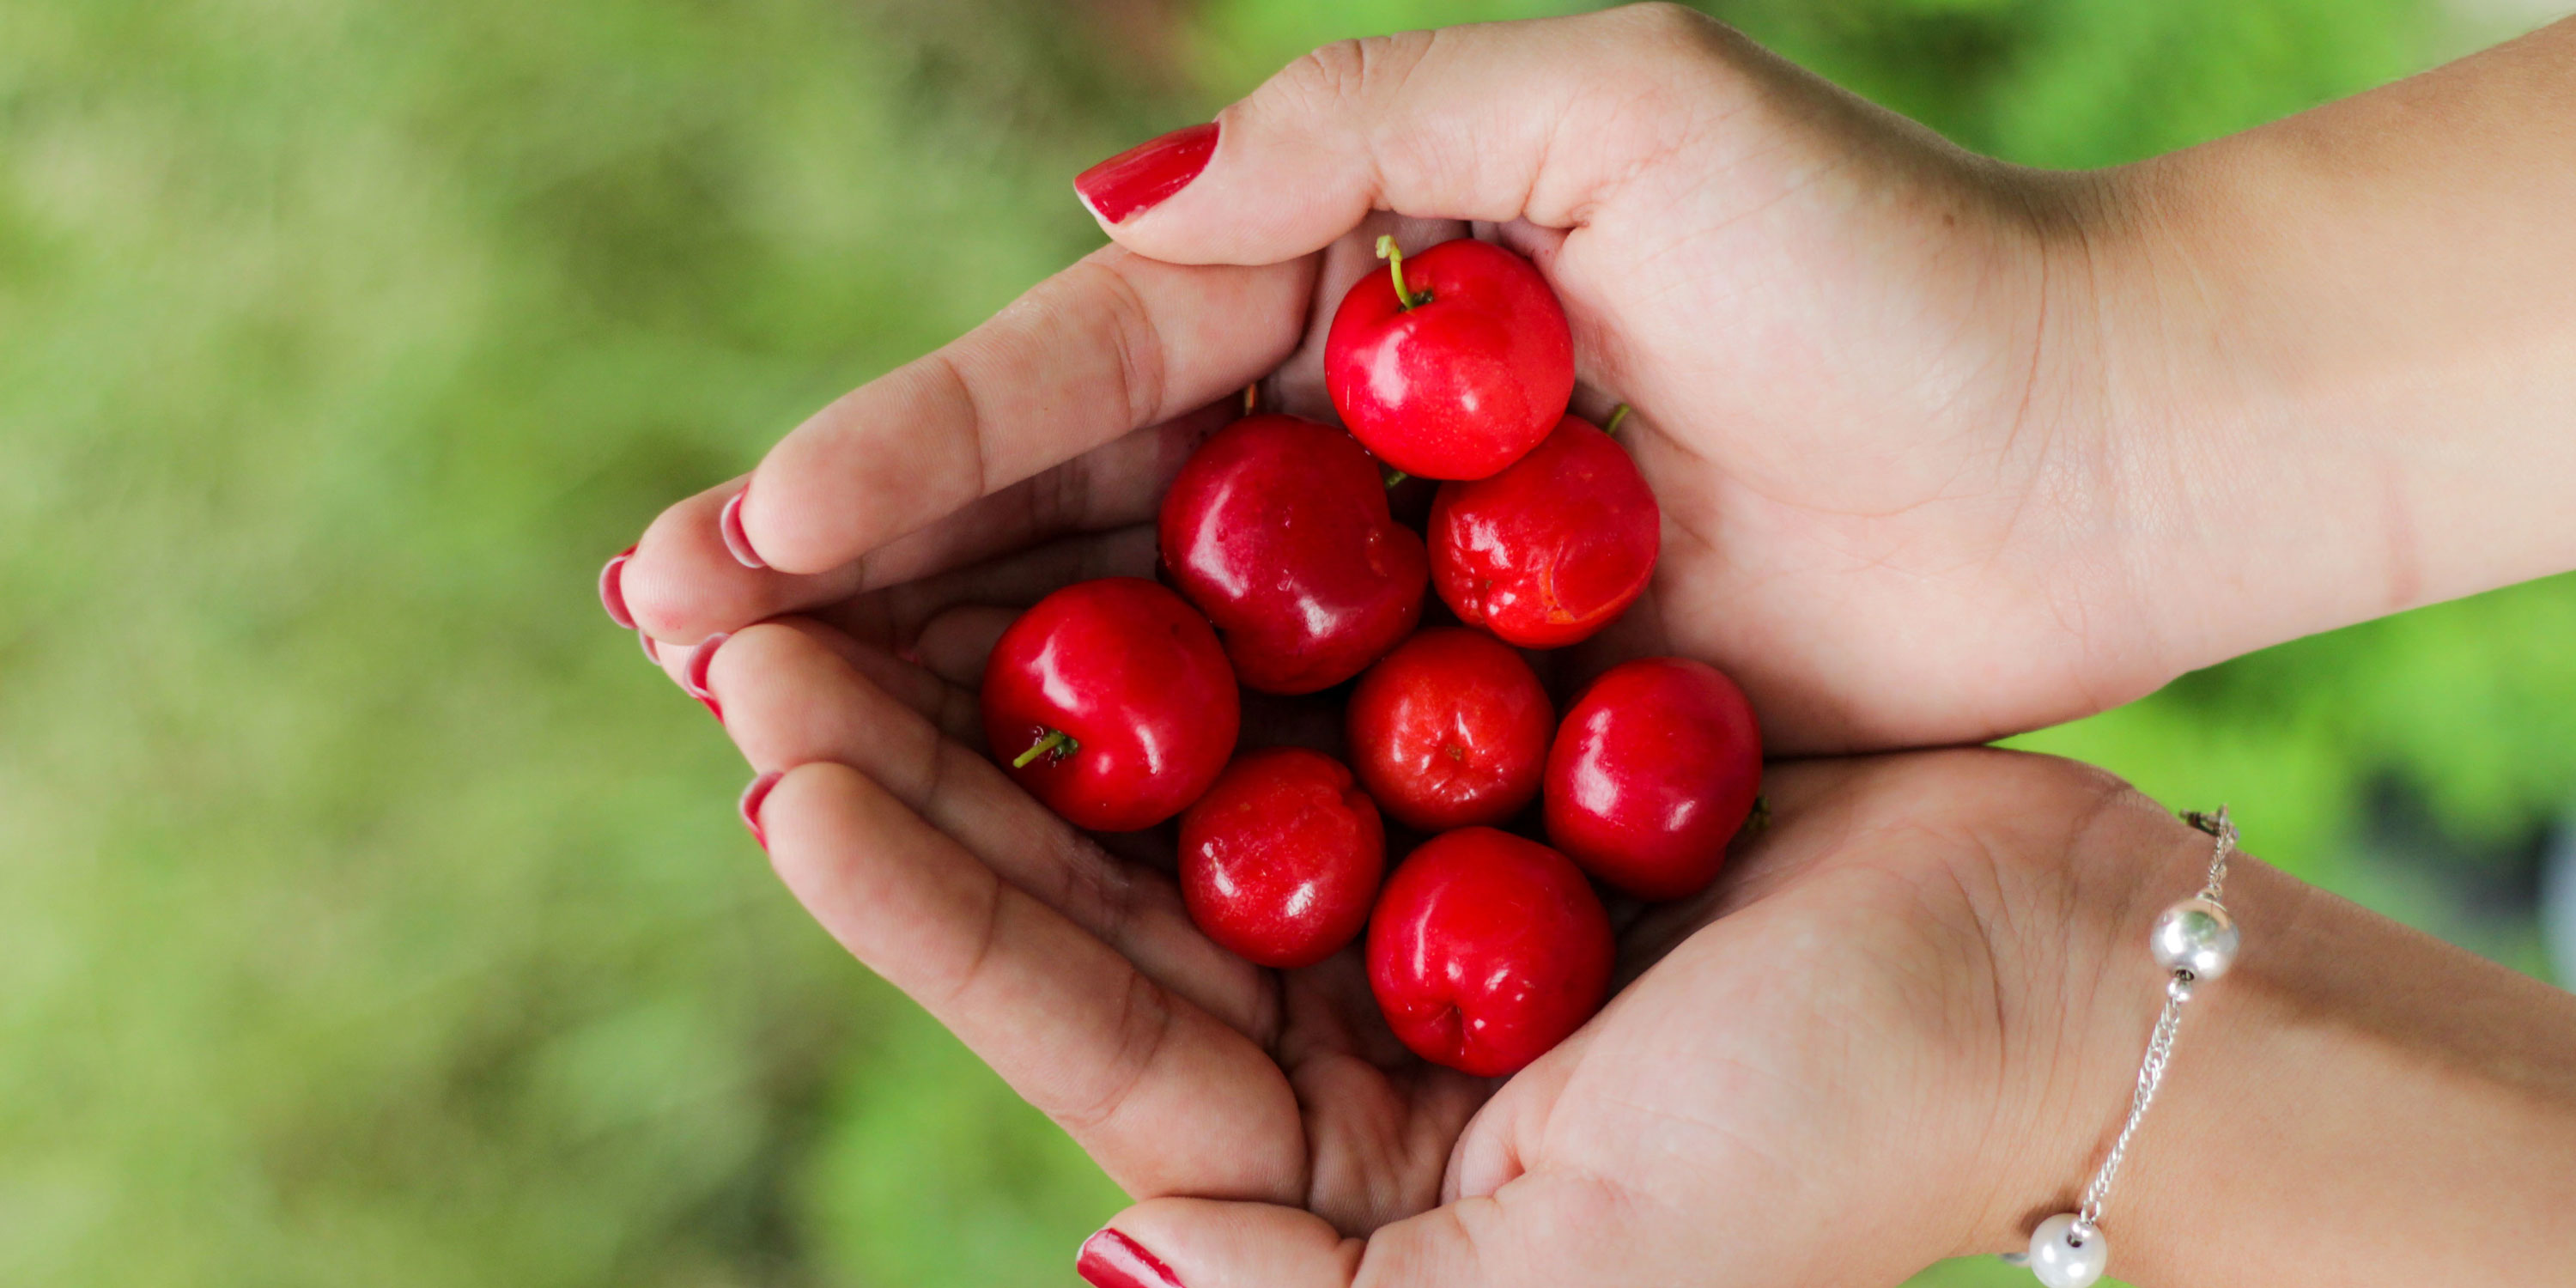 Handfuls of cherries